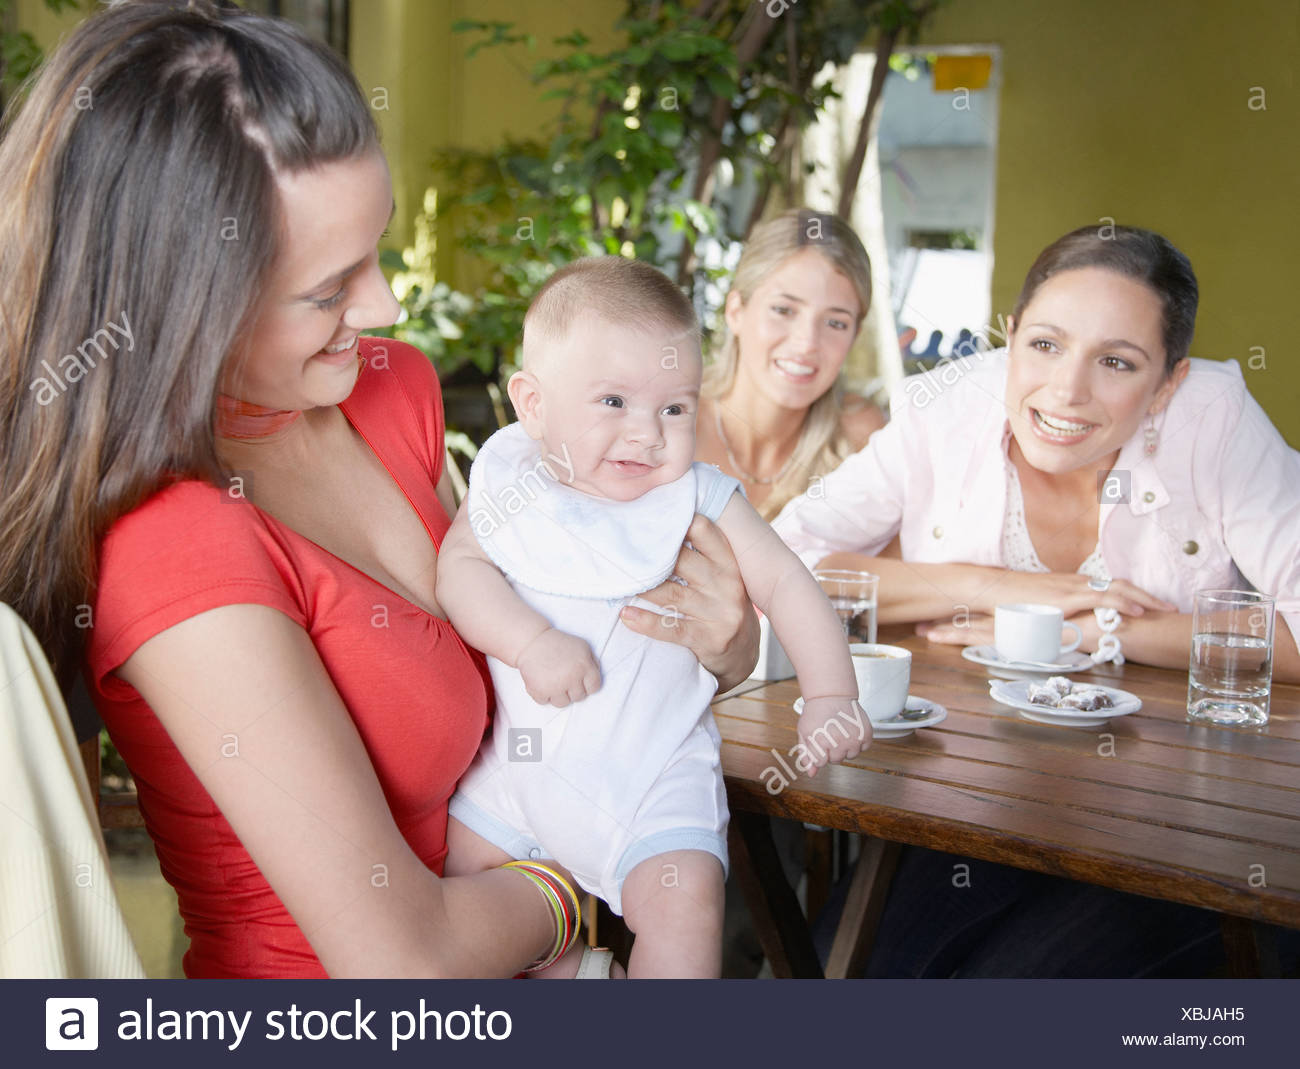 Three women on outdoor patio where one is holding a smiling baby - Stock Image